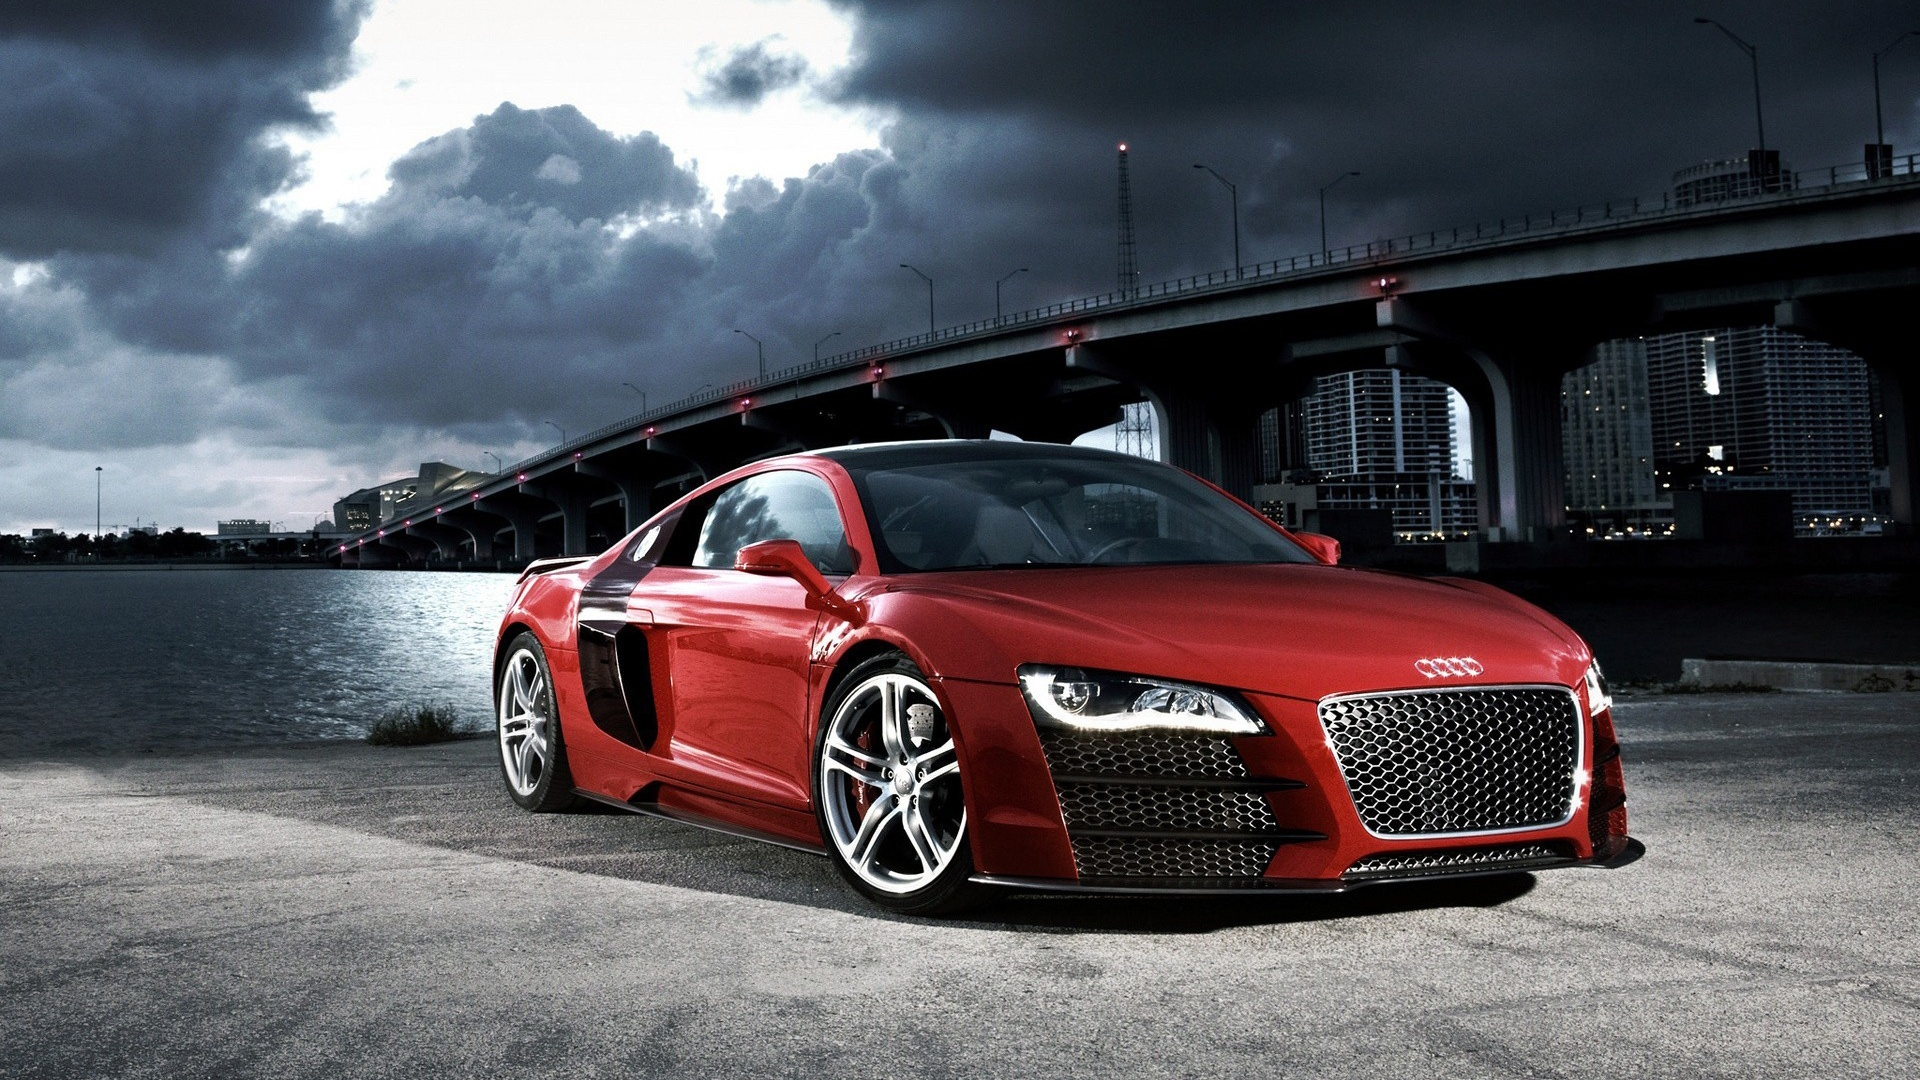 Audi R8 TDI Le Mans Concept HD Wallpapers 1080p Cars   WallpaperAsk 1920x1080